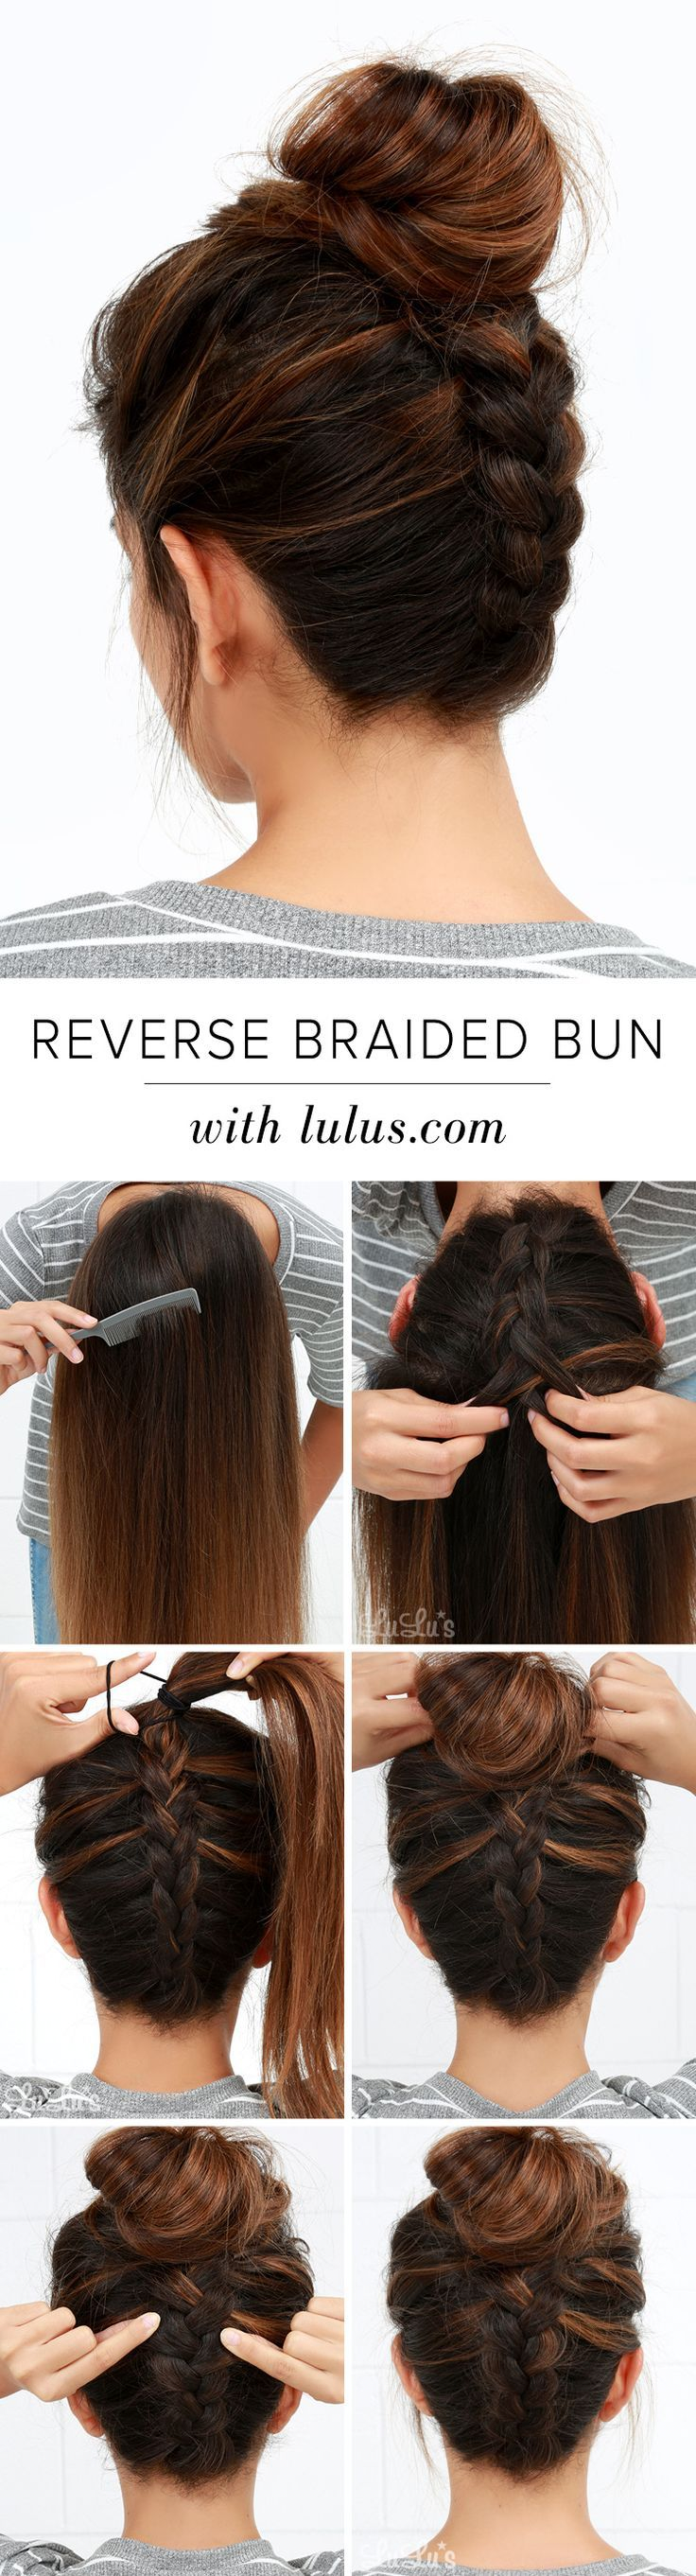 reverse-braid-messy-bun                                                                                                                                                     More